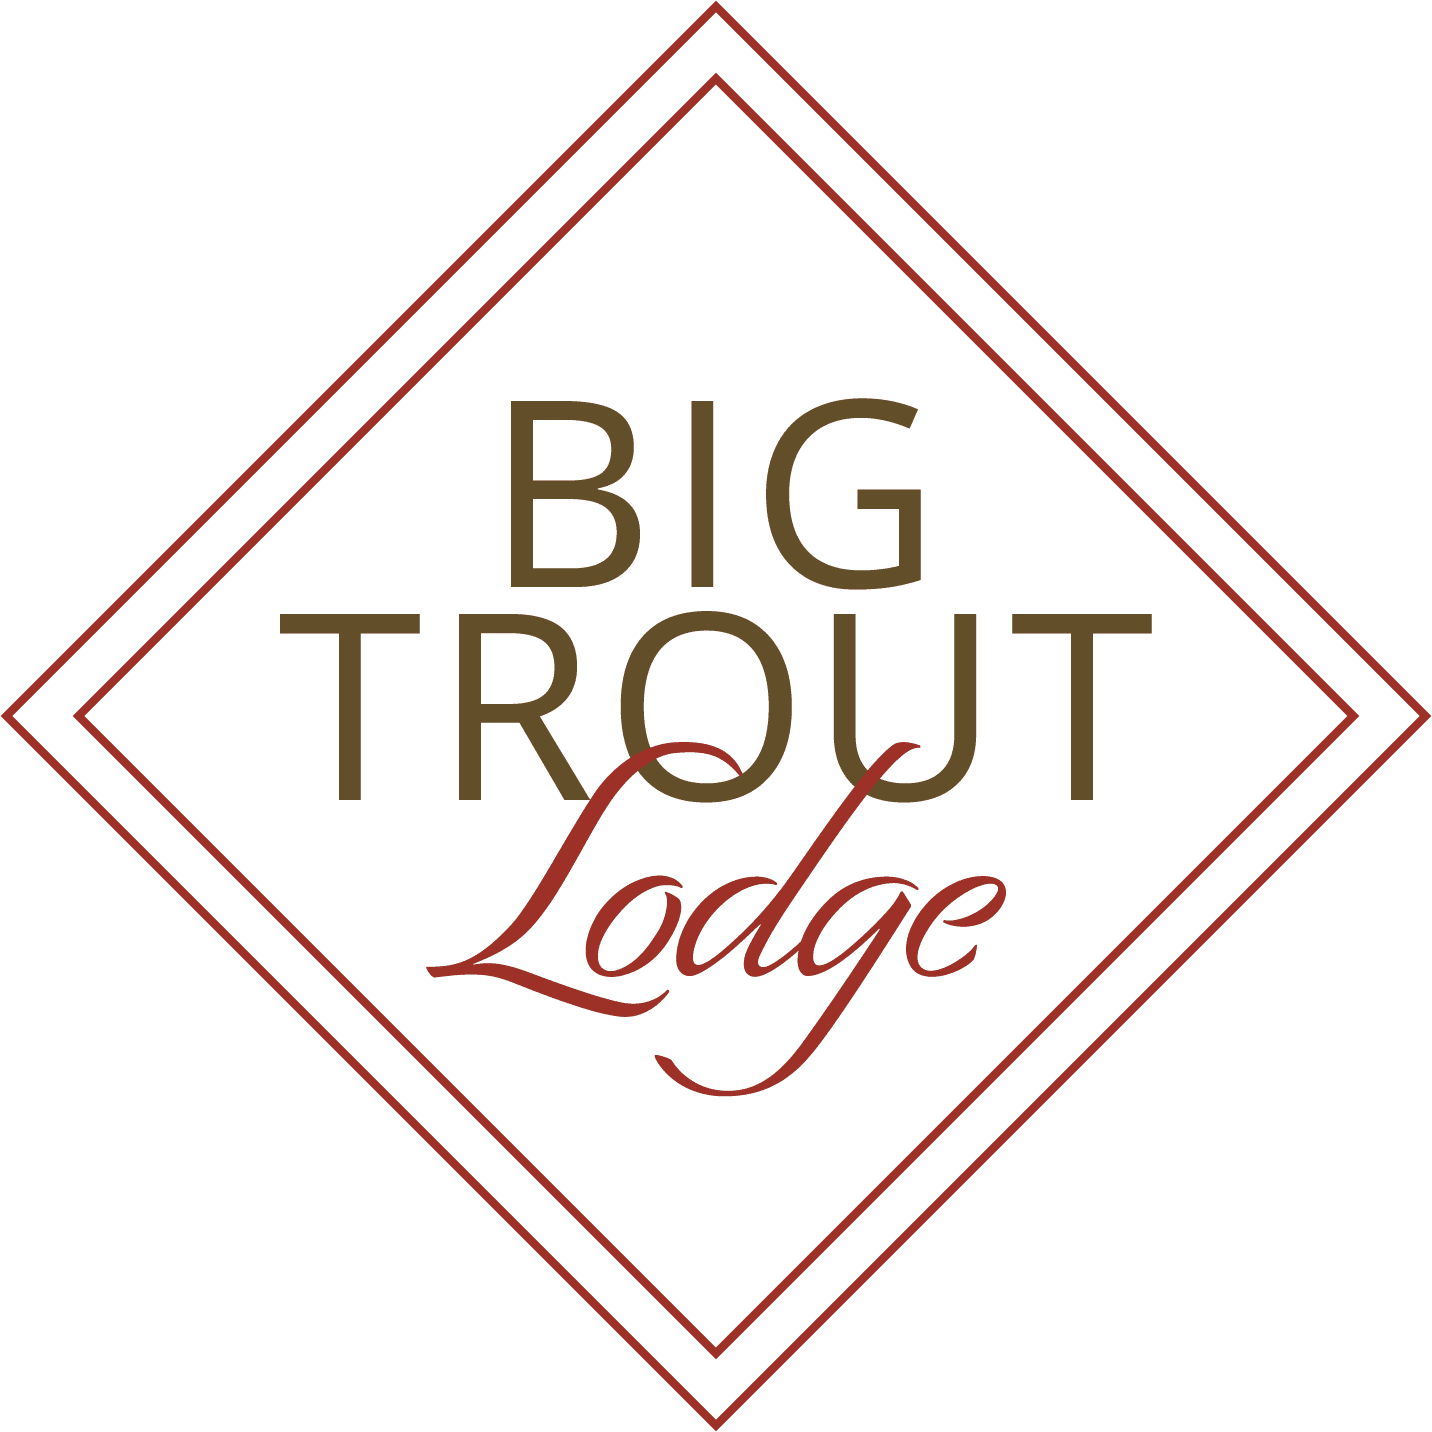 Big Trout Lodge logo icon